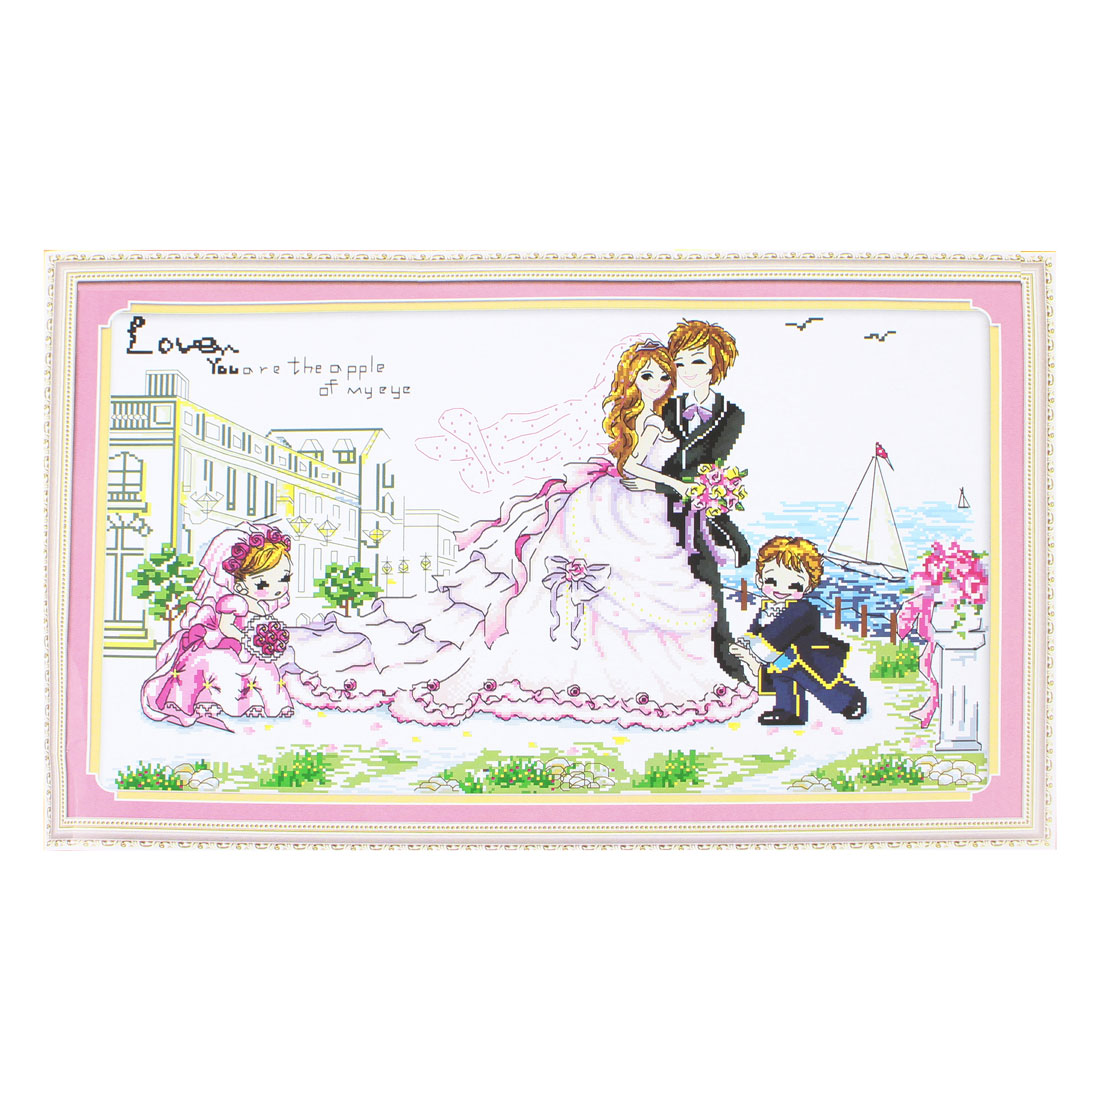 Lovers Wedding Bride Groom Children Printed Stamped Cross Stitch Counted Kit